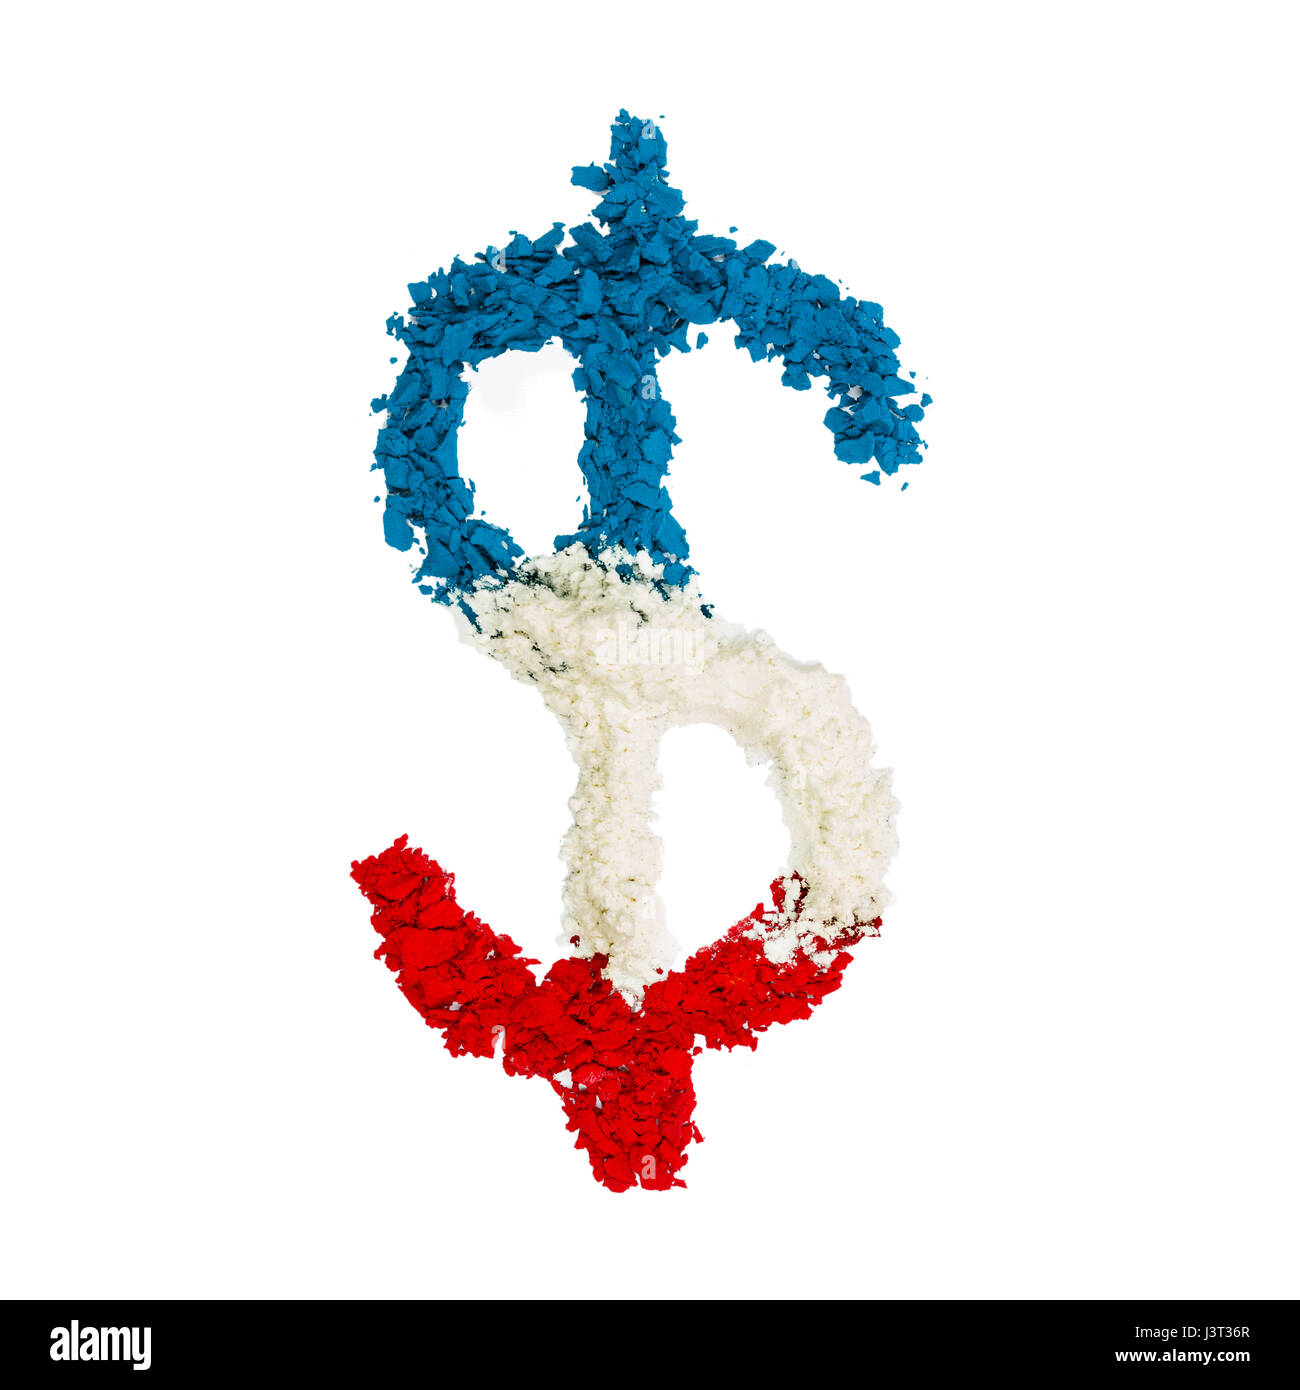 The US Dollar Sign made with red, white and blue color powder and isolated on a white background. - Stock Image